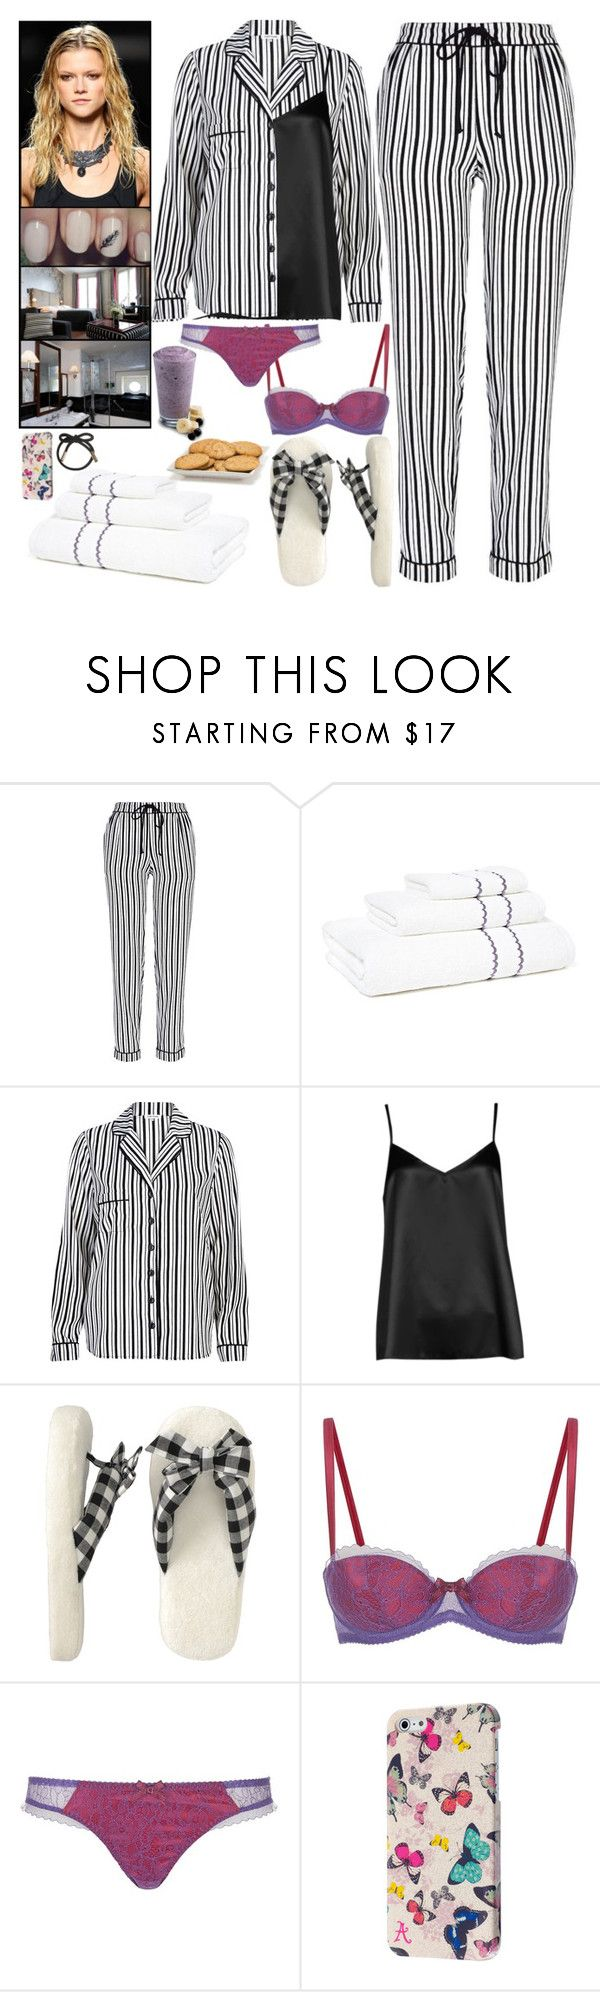 """""""Day 2: Eating a snack, taking a shower and going to sleep"""" by shama25237 ❤ liked on Polyvore featuring River Island, Hamburg House, Boohoo, Aéropostale, Sephora Collection, Agent Provocateur, Accessorize, Topshop, women's clothing and women's fashion"""